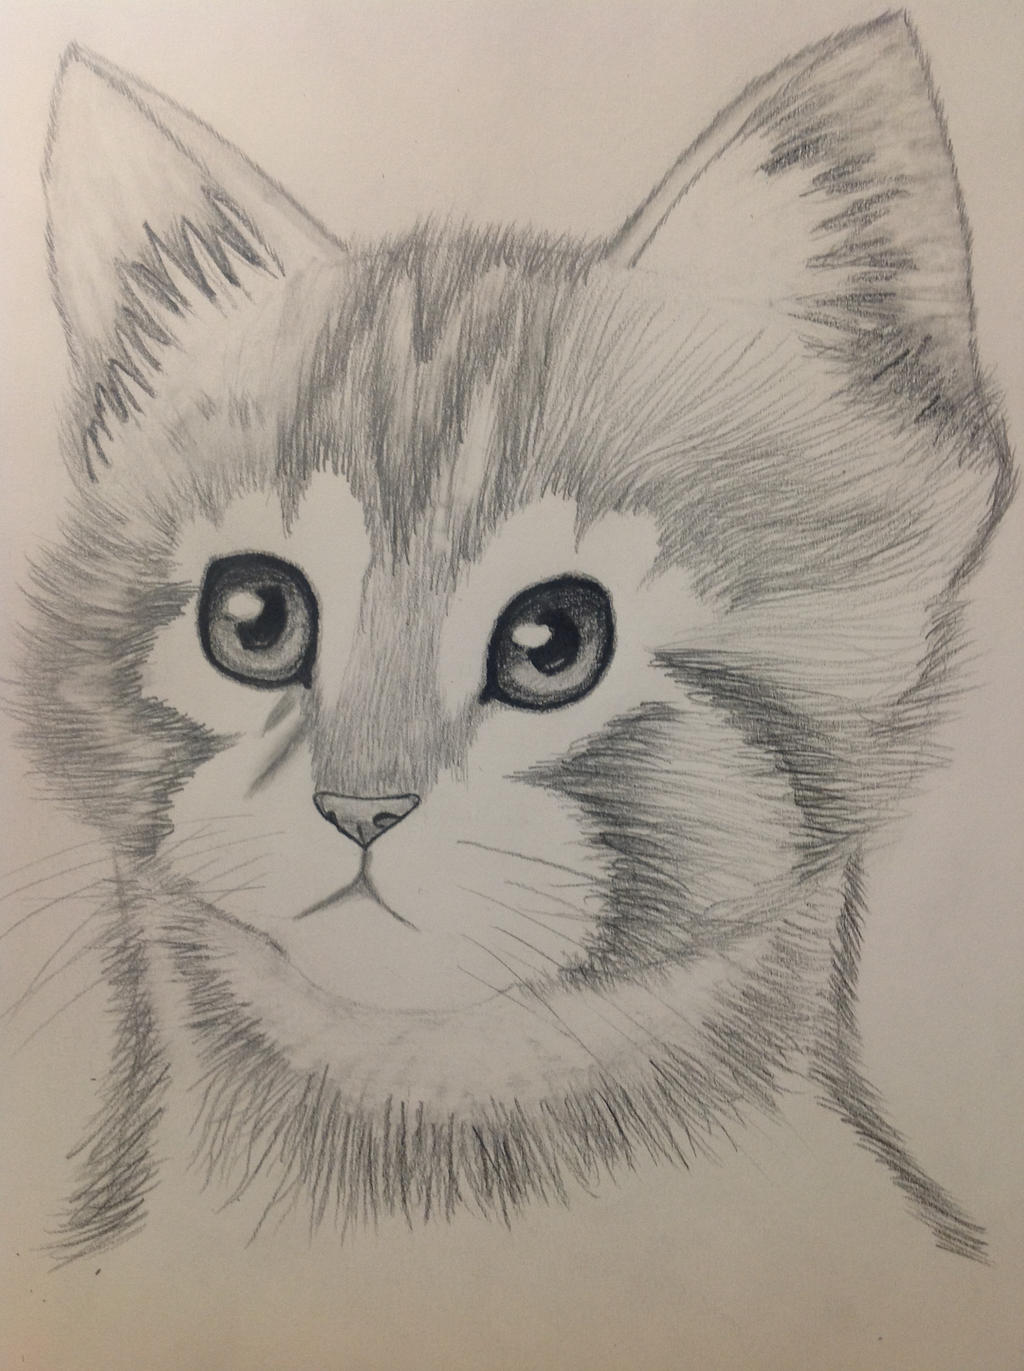 Kitten Pencil Drawing By Bbbcomiclover1 On DeviantArt